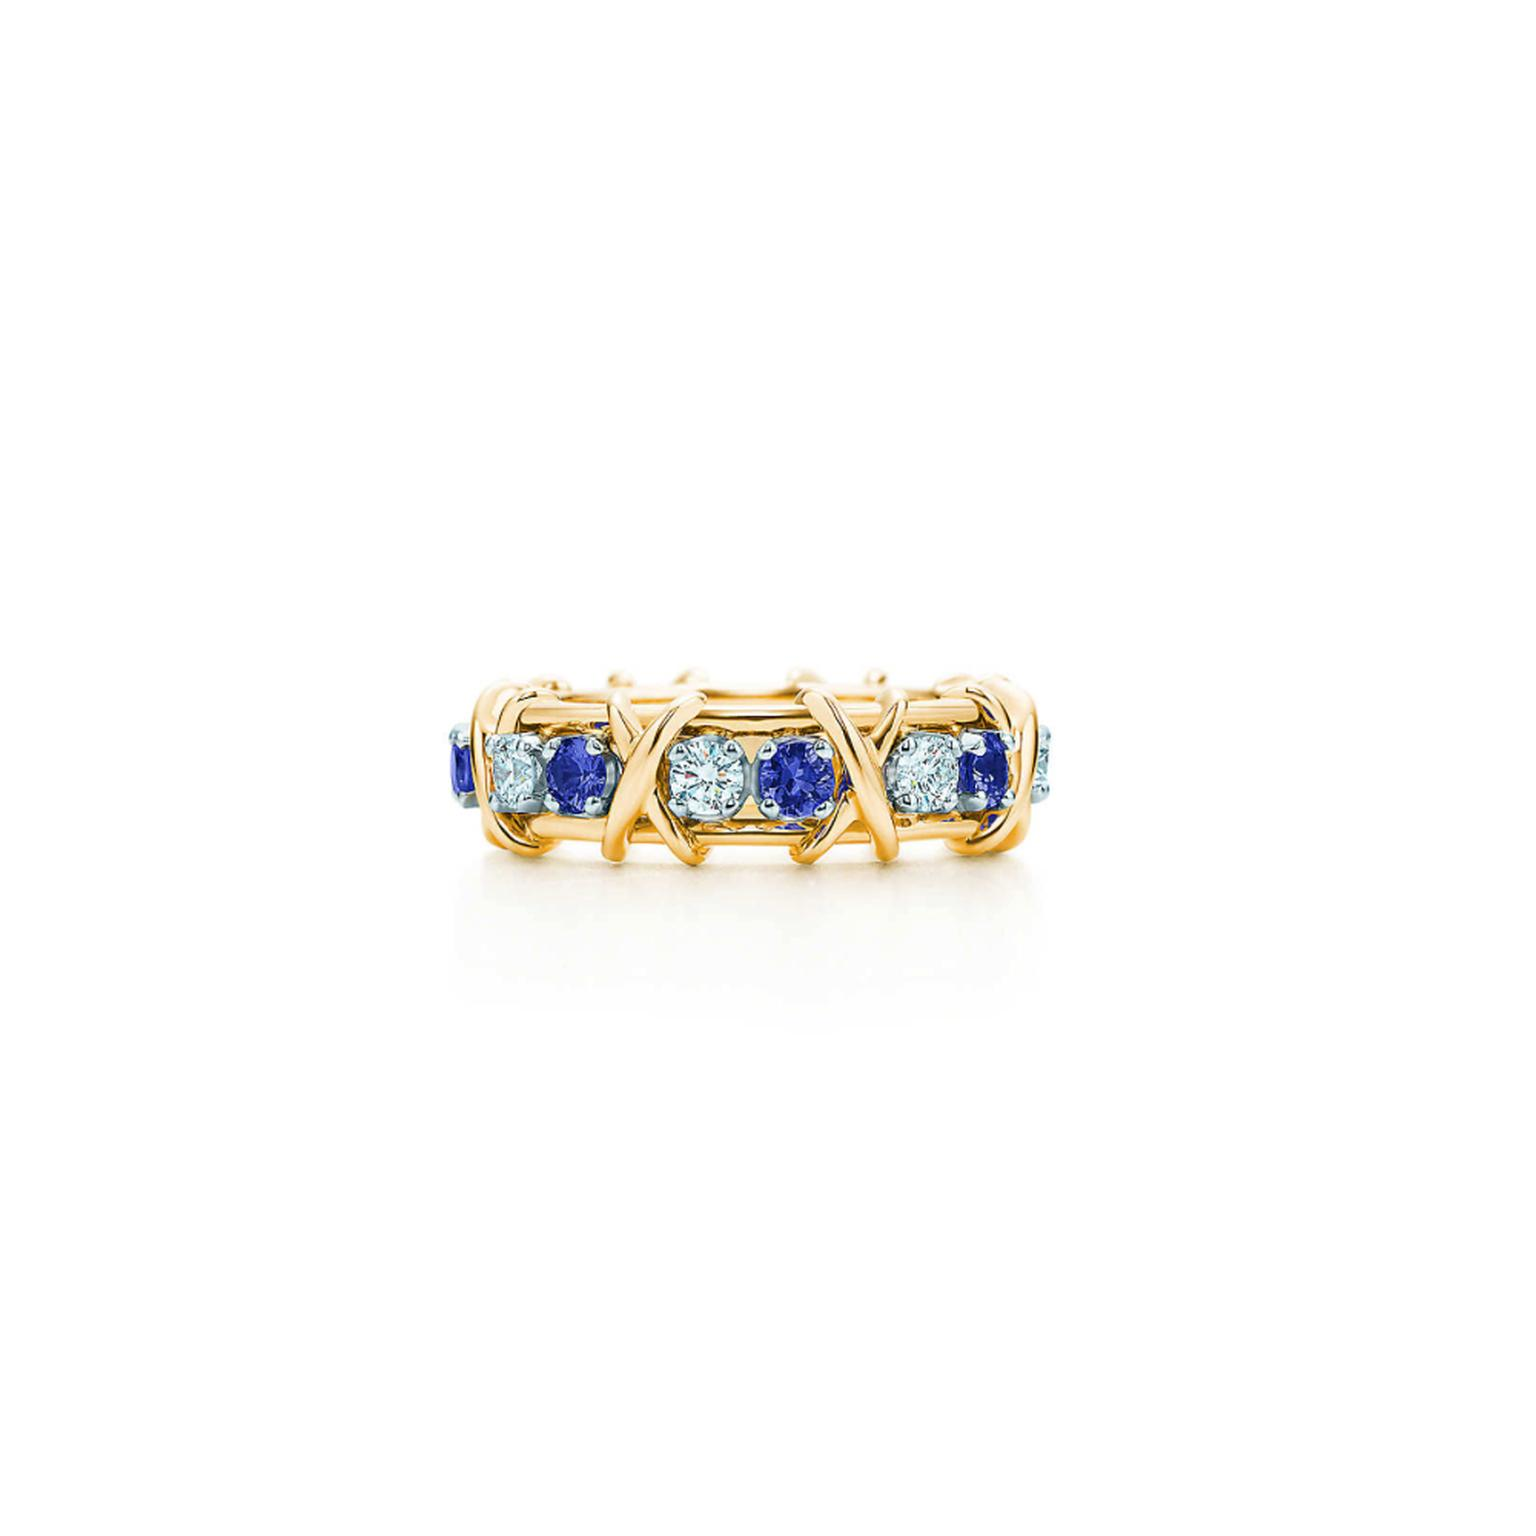 Jean Schlumberger for Tiffany sapphire birthstone ring